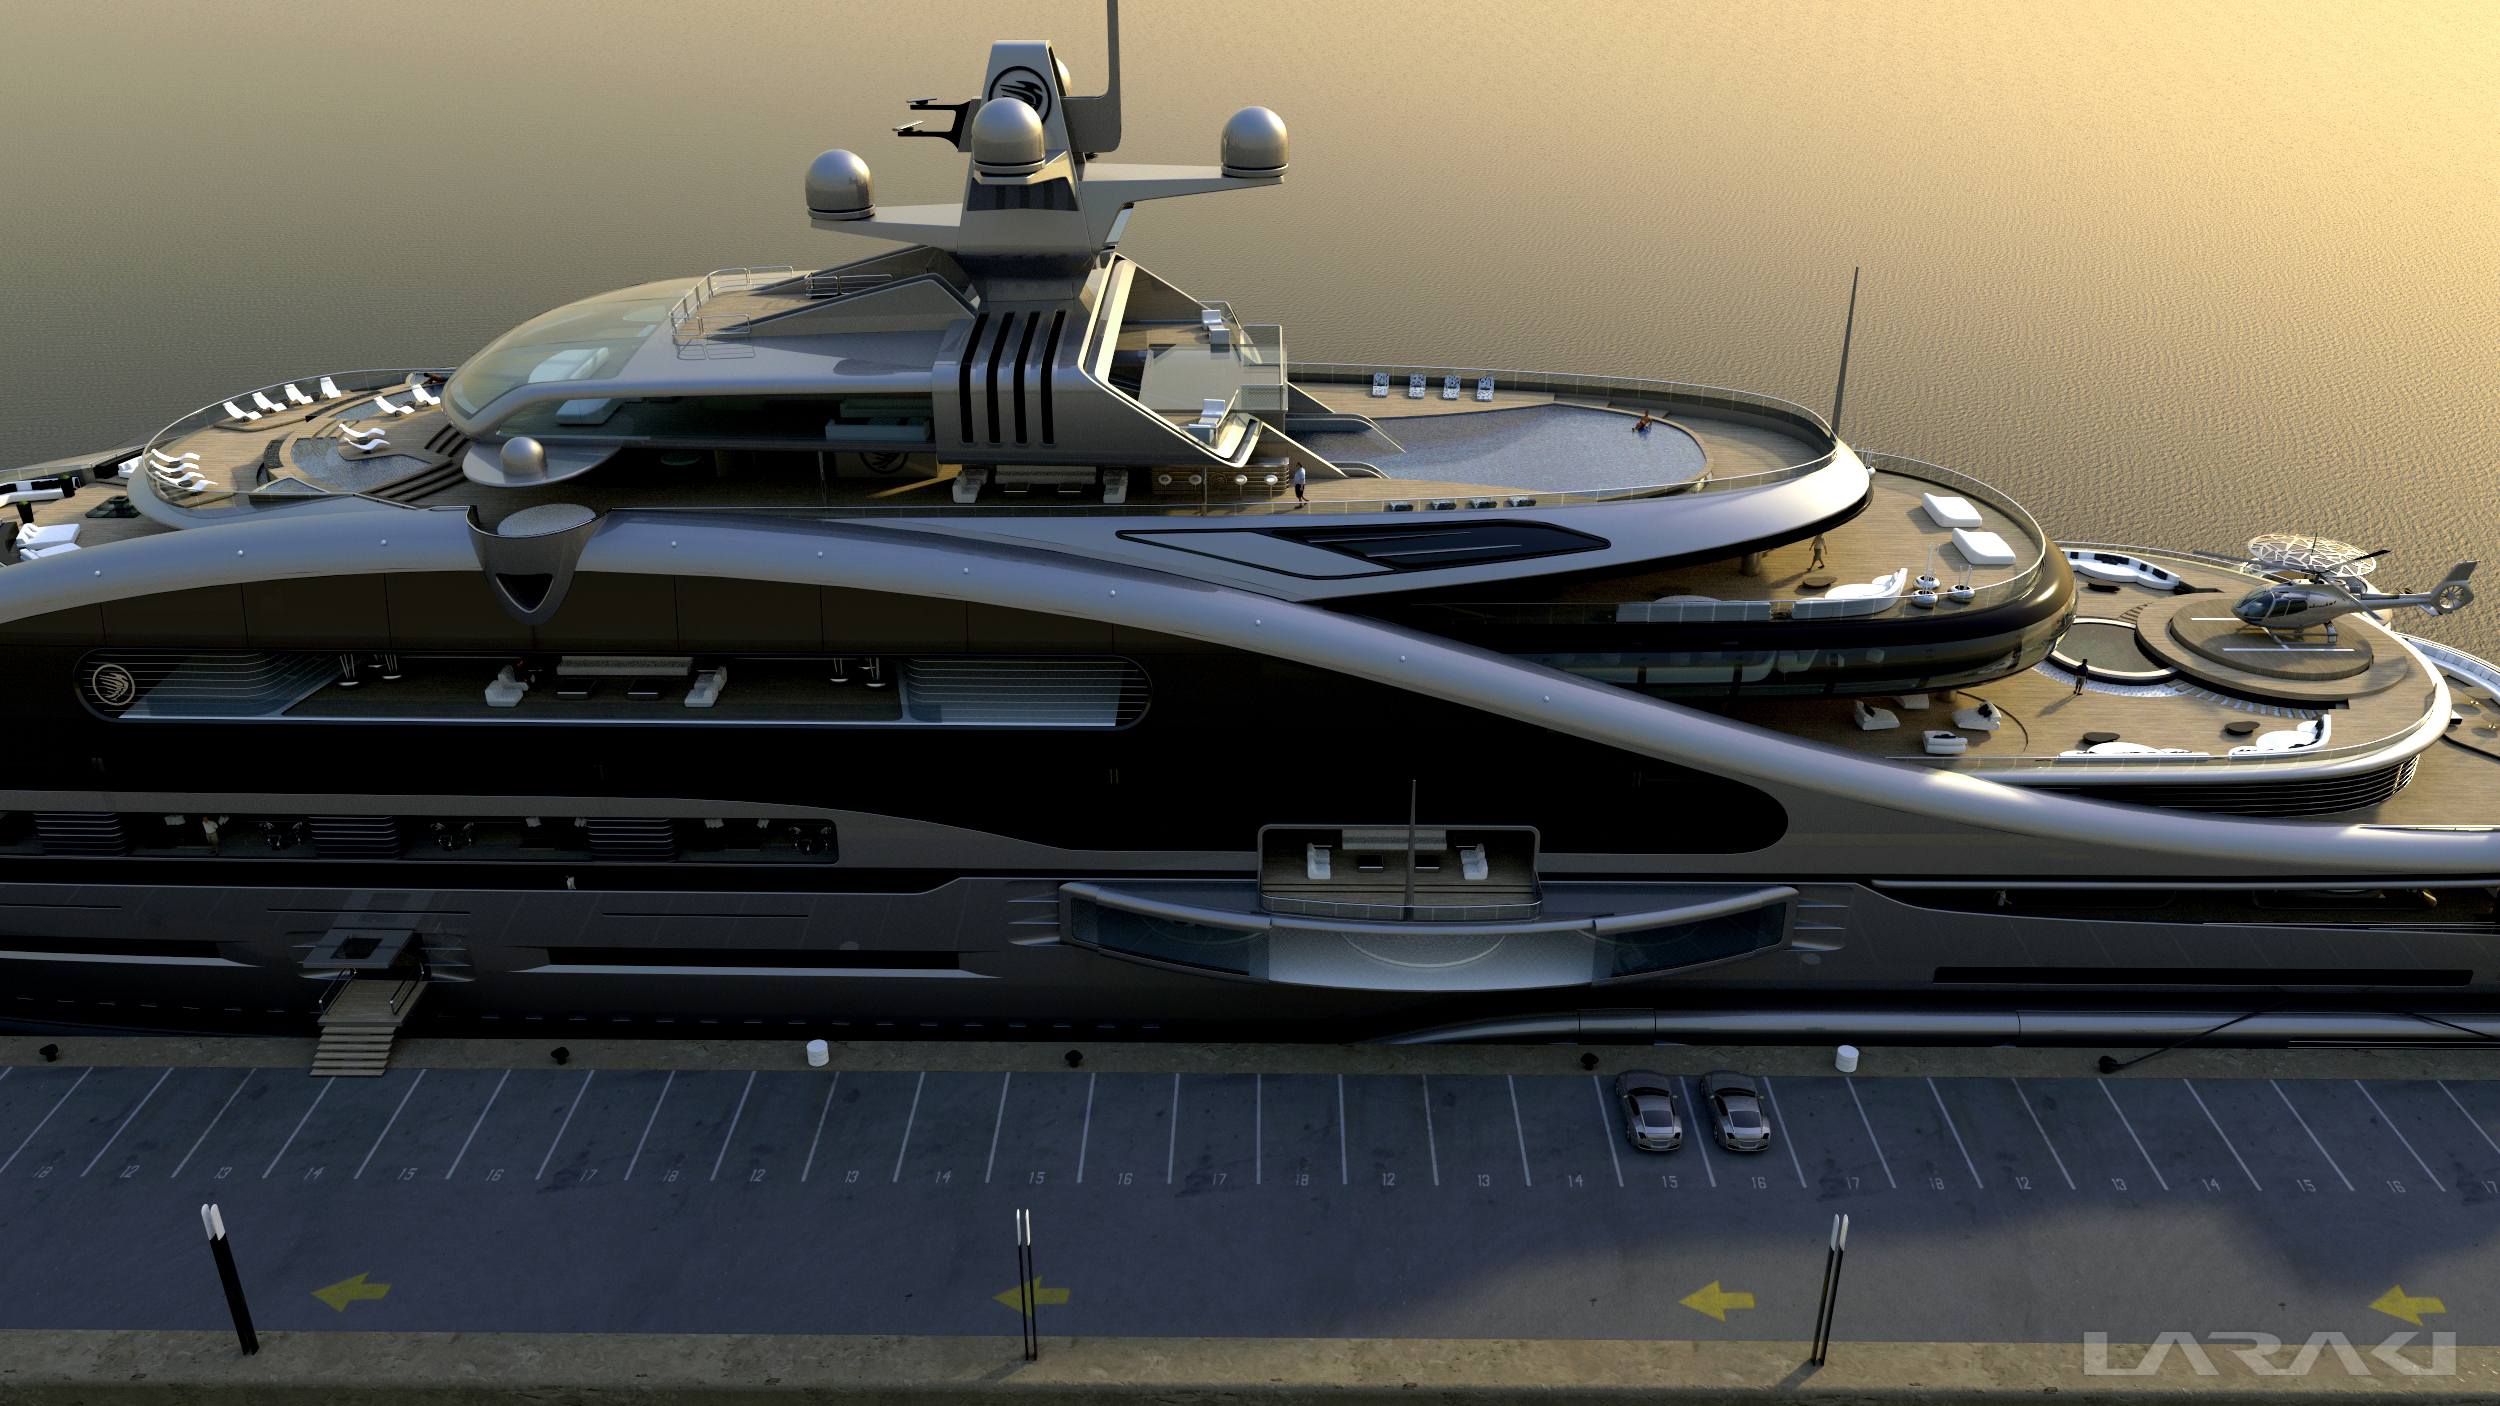 http://www.charterworld.com/news/wp-content/uploads/2012/08/Laraki-designed-luxury-yacht-Prelude-side-view.jpg